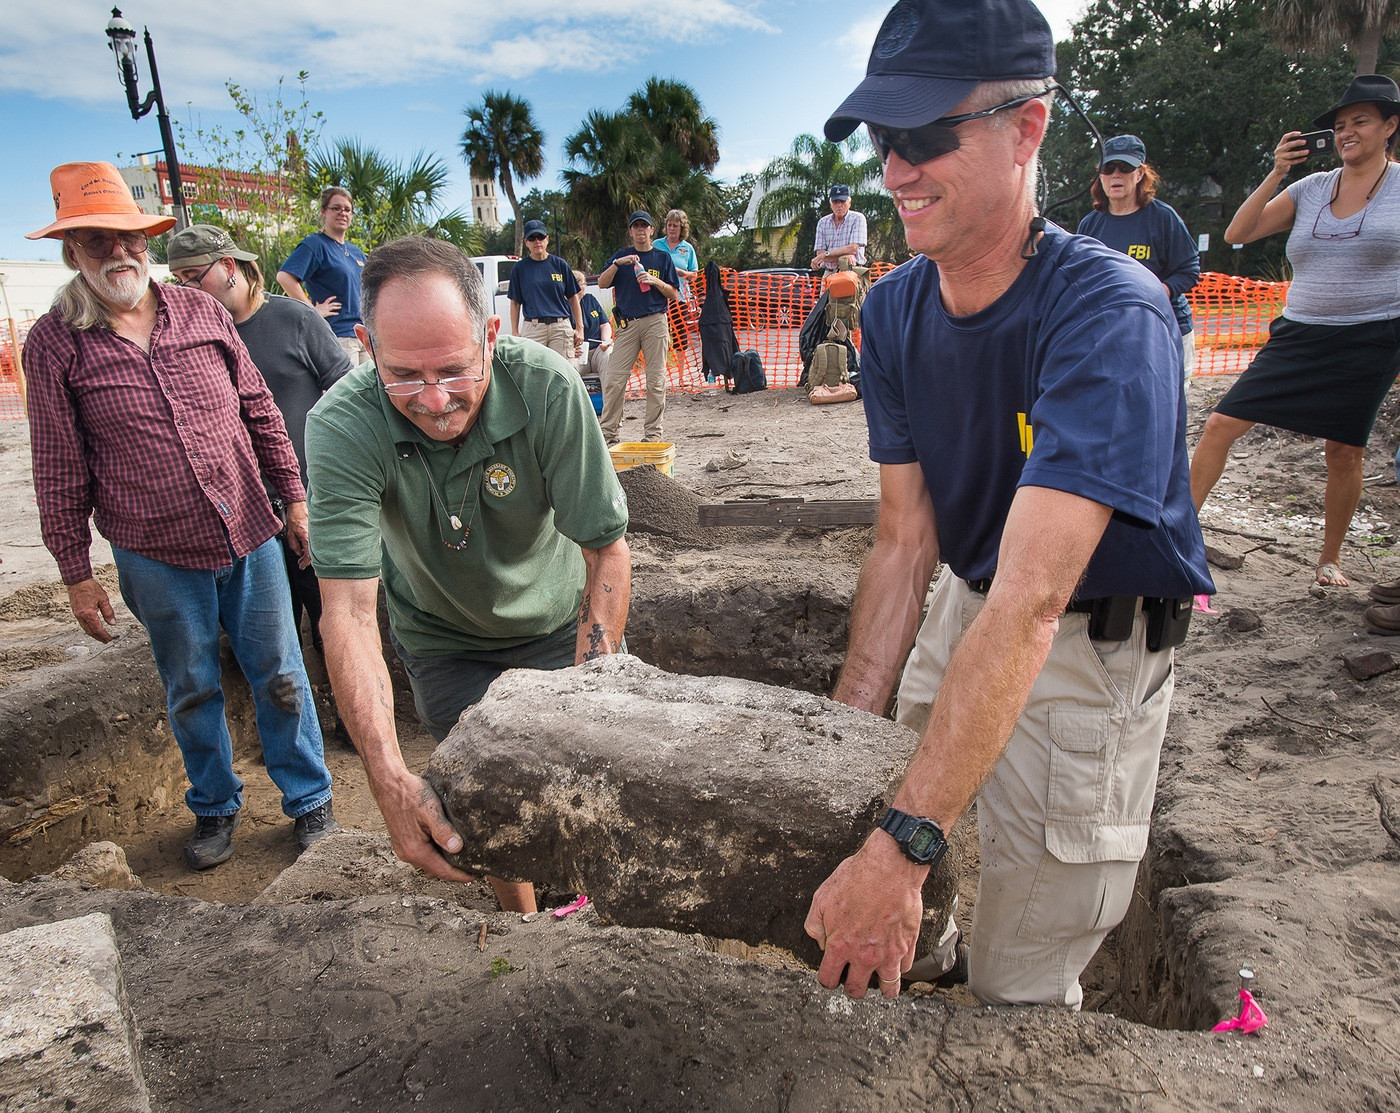 FBI Special Agent Larry Meyer (right) joins a volunteer in hoisting a coquina stone blocking the opening to an abandoned 18th century well on a plot of land in historic downtown St. Augustine, Florida. To keep up their training, members of FBI Jacksonville's Evidence Response Team helped out the city of St. Augustine on an archaeological dig at the site of a former 18th century dwelling.